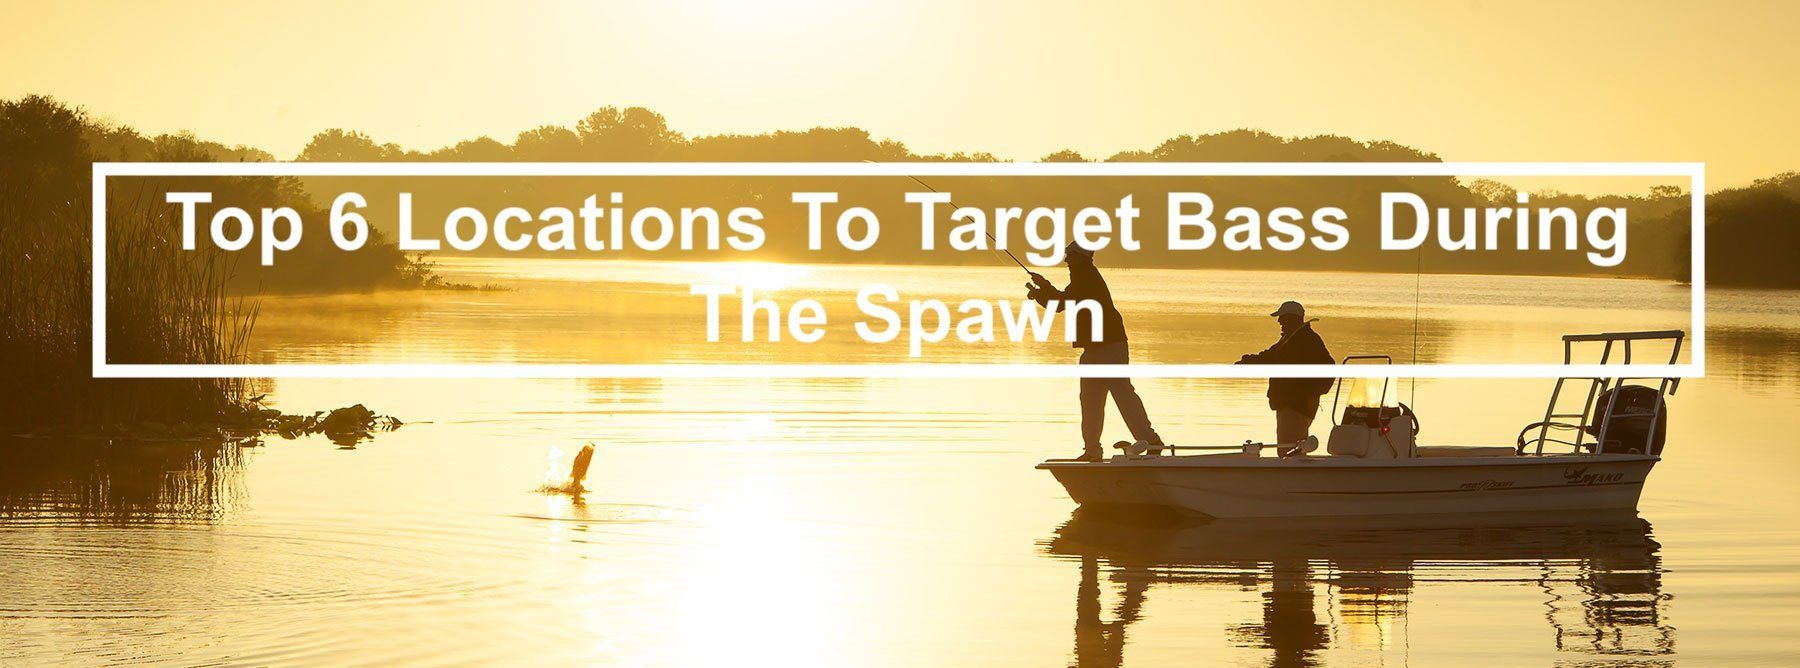 Top 6 Locations To Target Bass During The Spawn